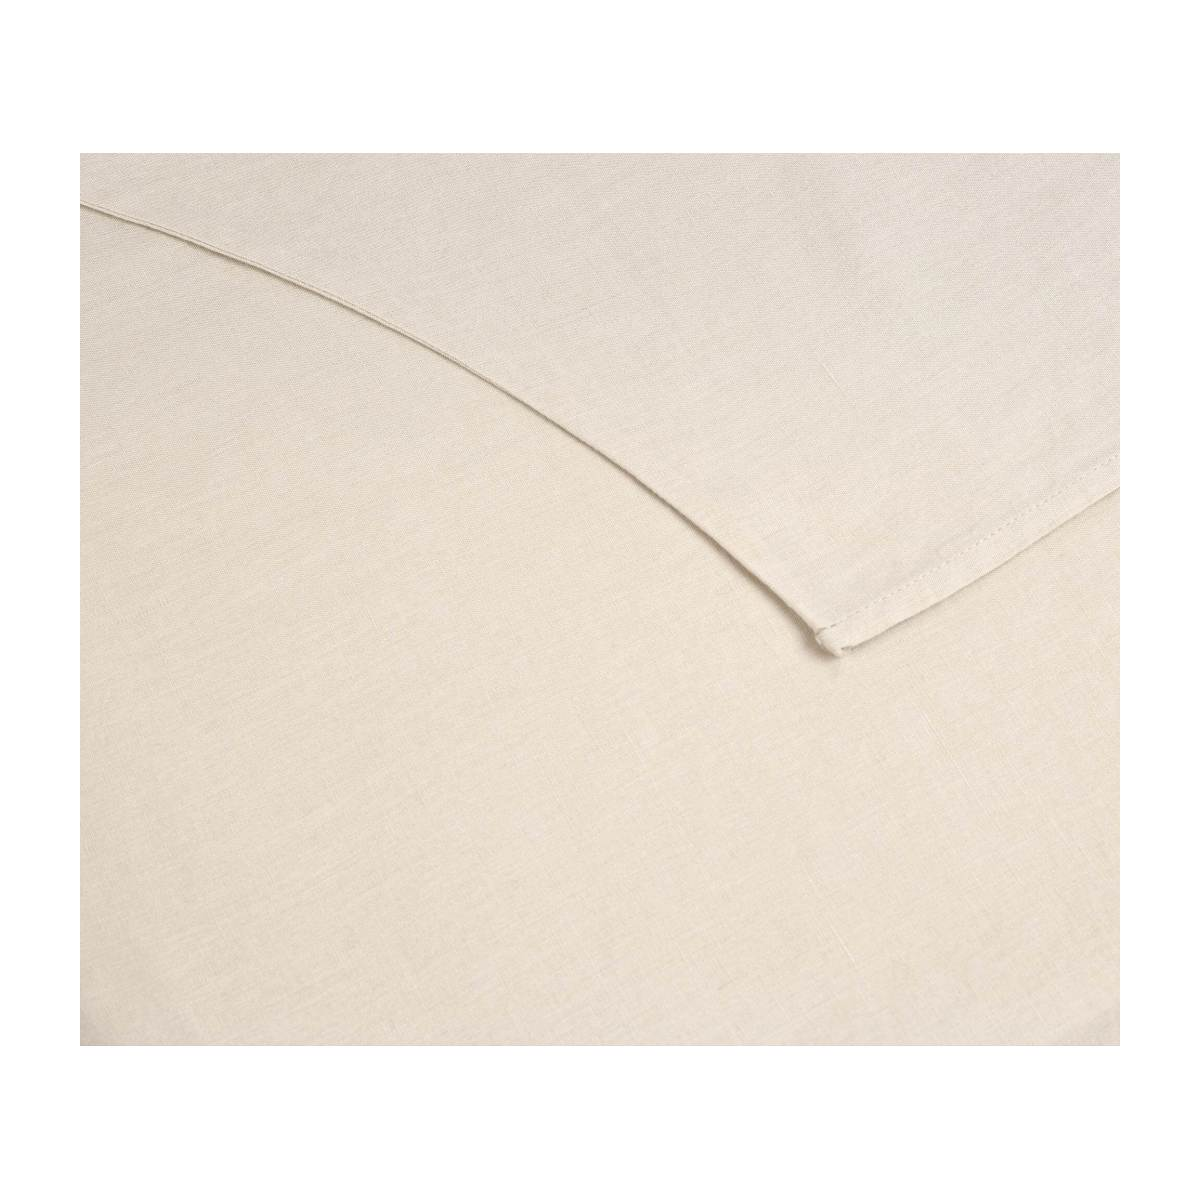 Duvet cover made of flax 240x220cm, natural n°3